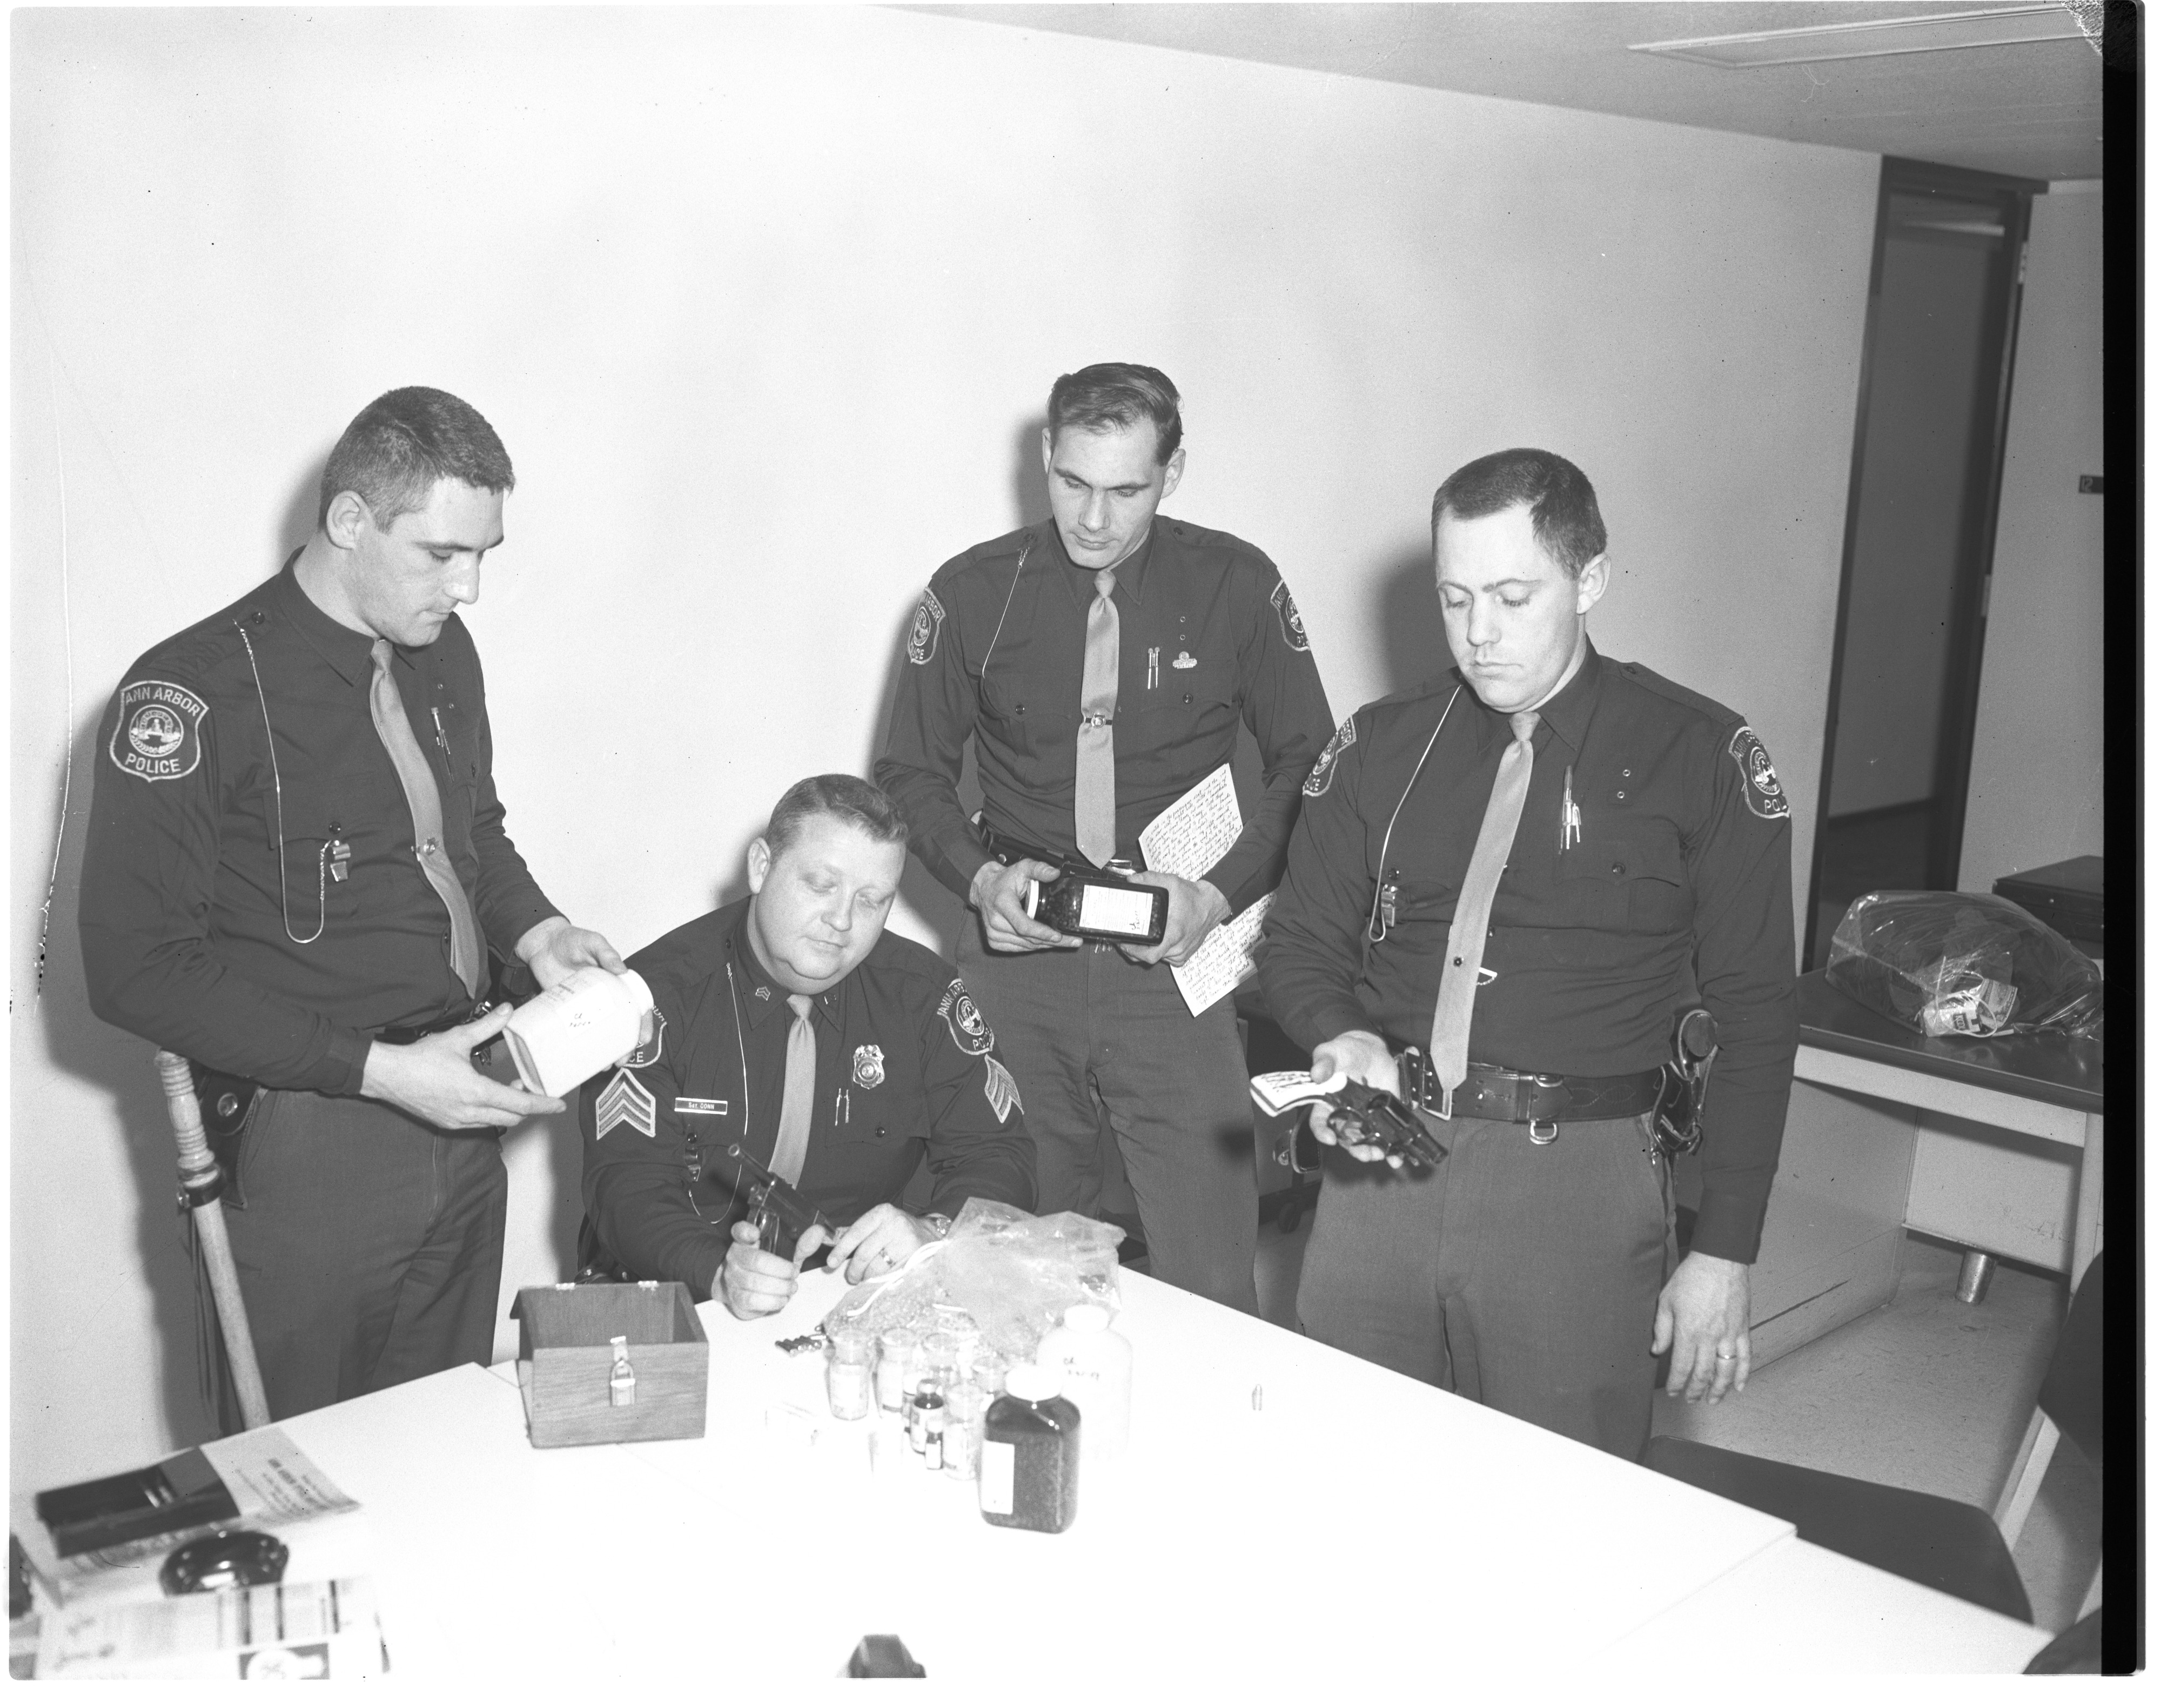 Ann Arbor Police Officers Check Seized Guns and Narcotics, March 1967 image